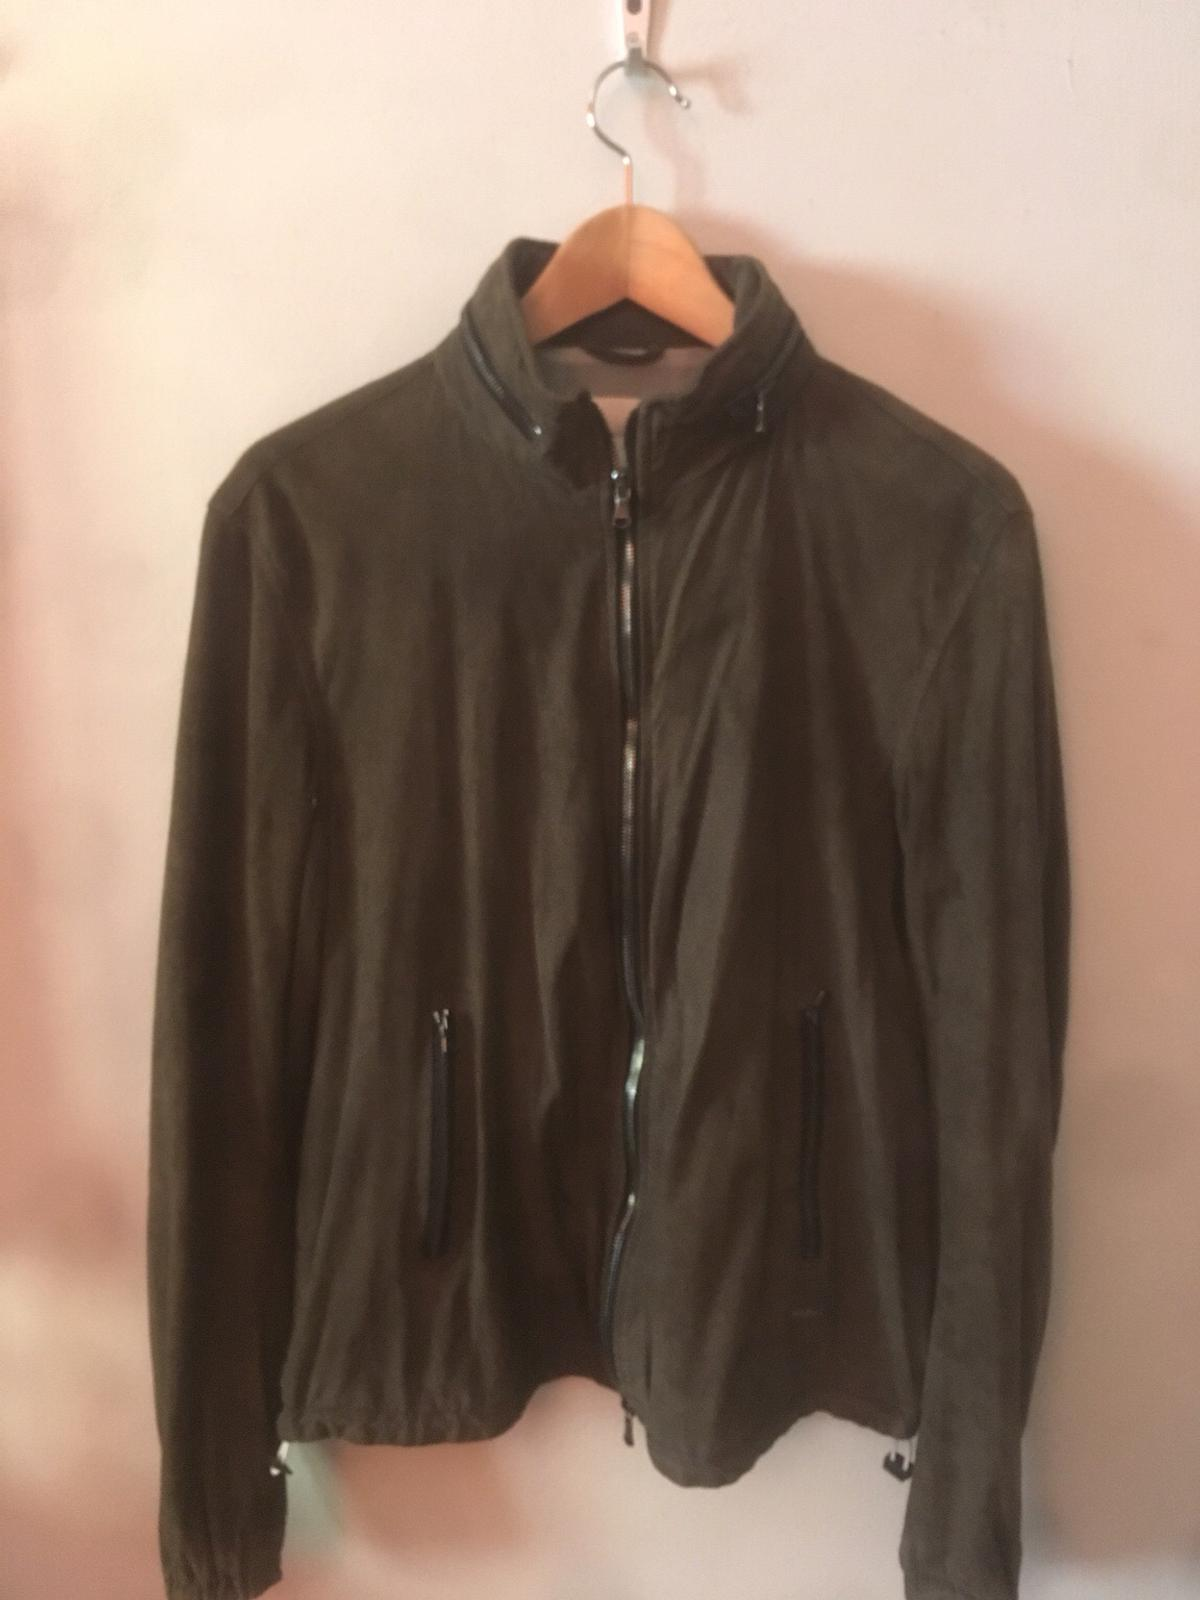 new style 1c855 c68b2 Giacca pelle traforata Uomo in 27100 Pavia for €60.00 for ...